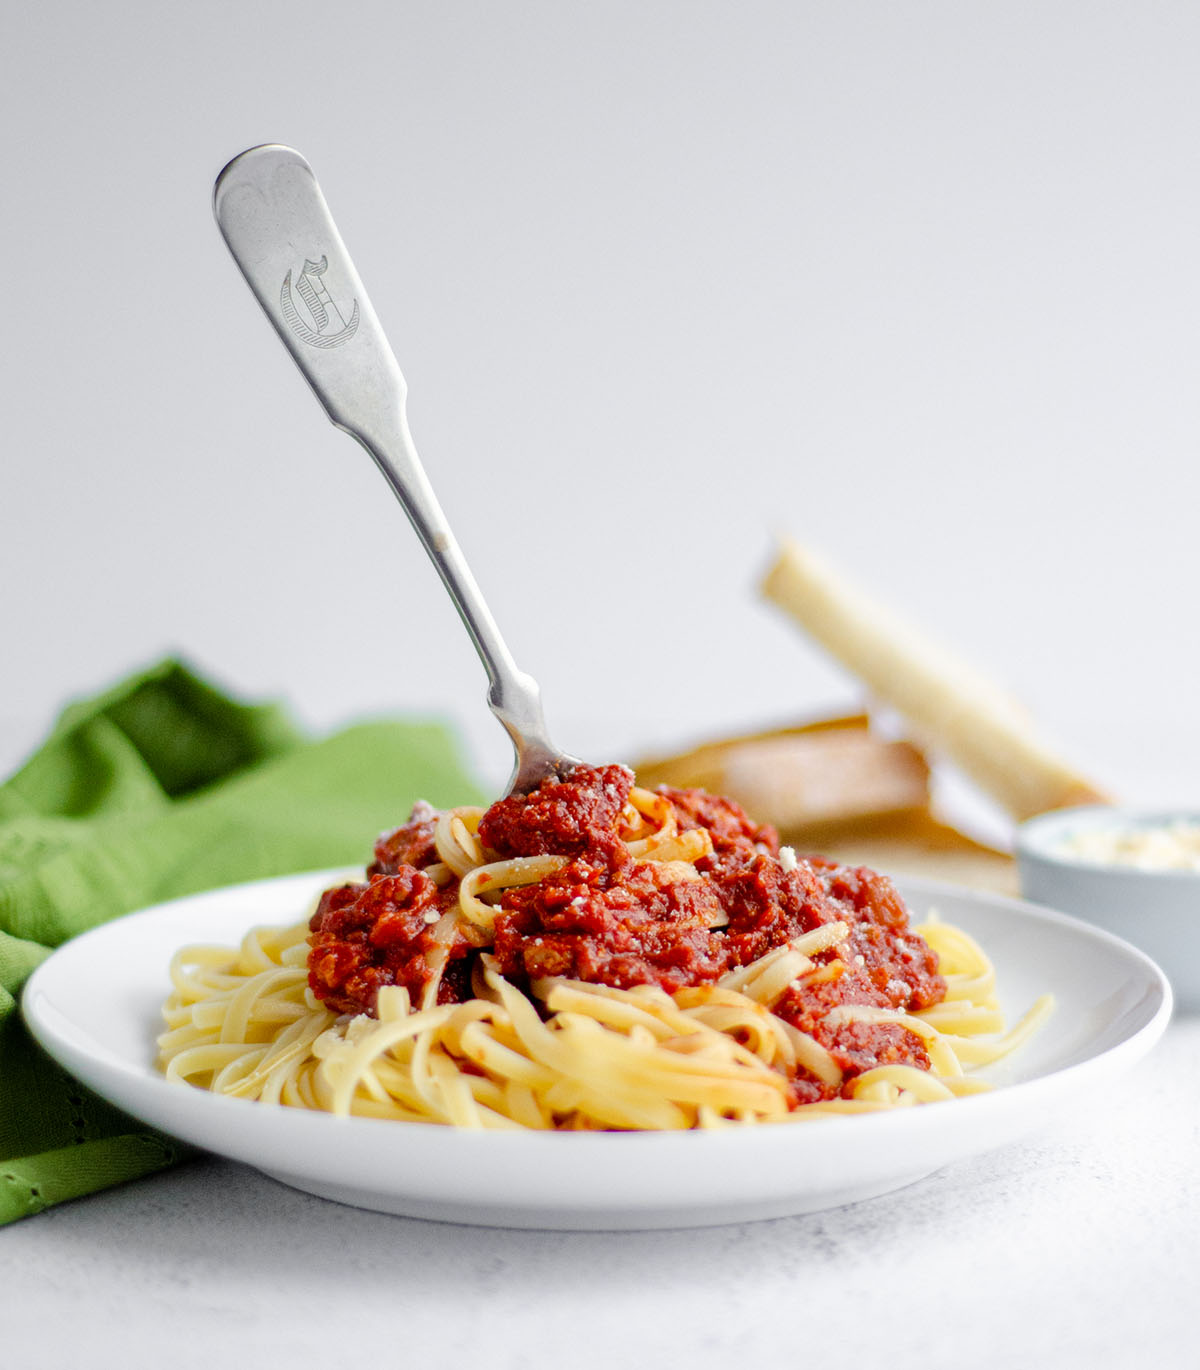 plate of pasta with homemade meat sauce and a fork sticking in the pile of pasta